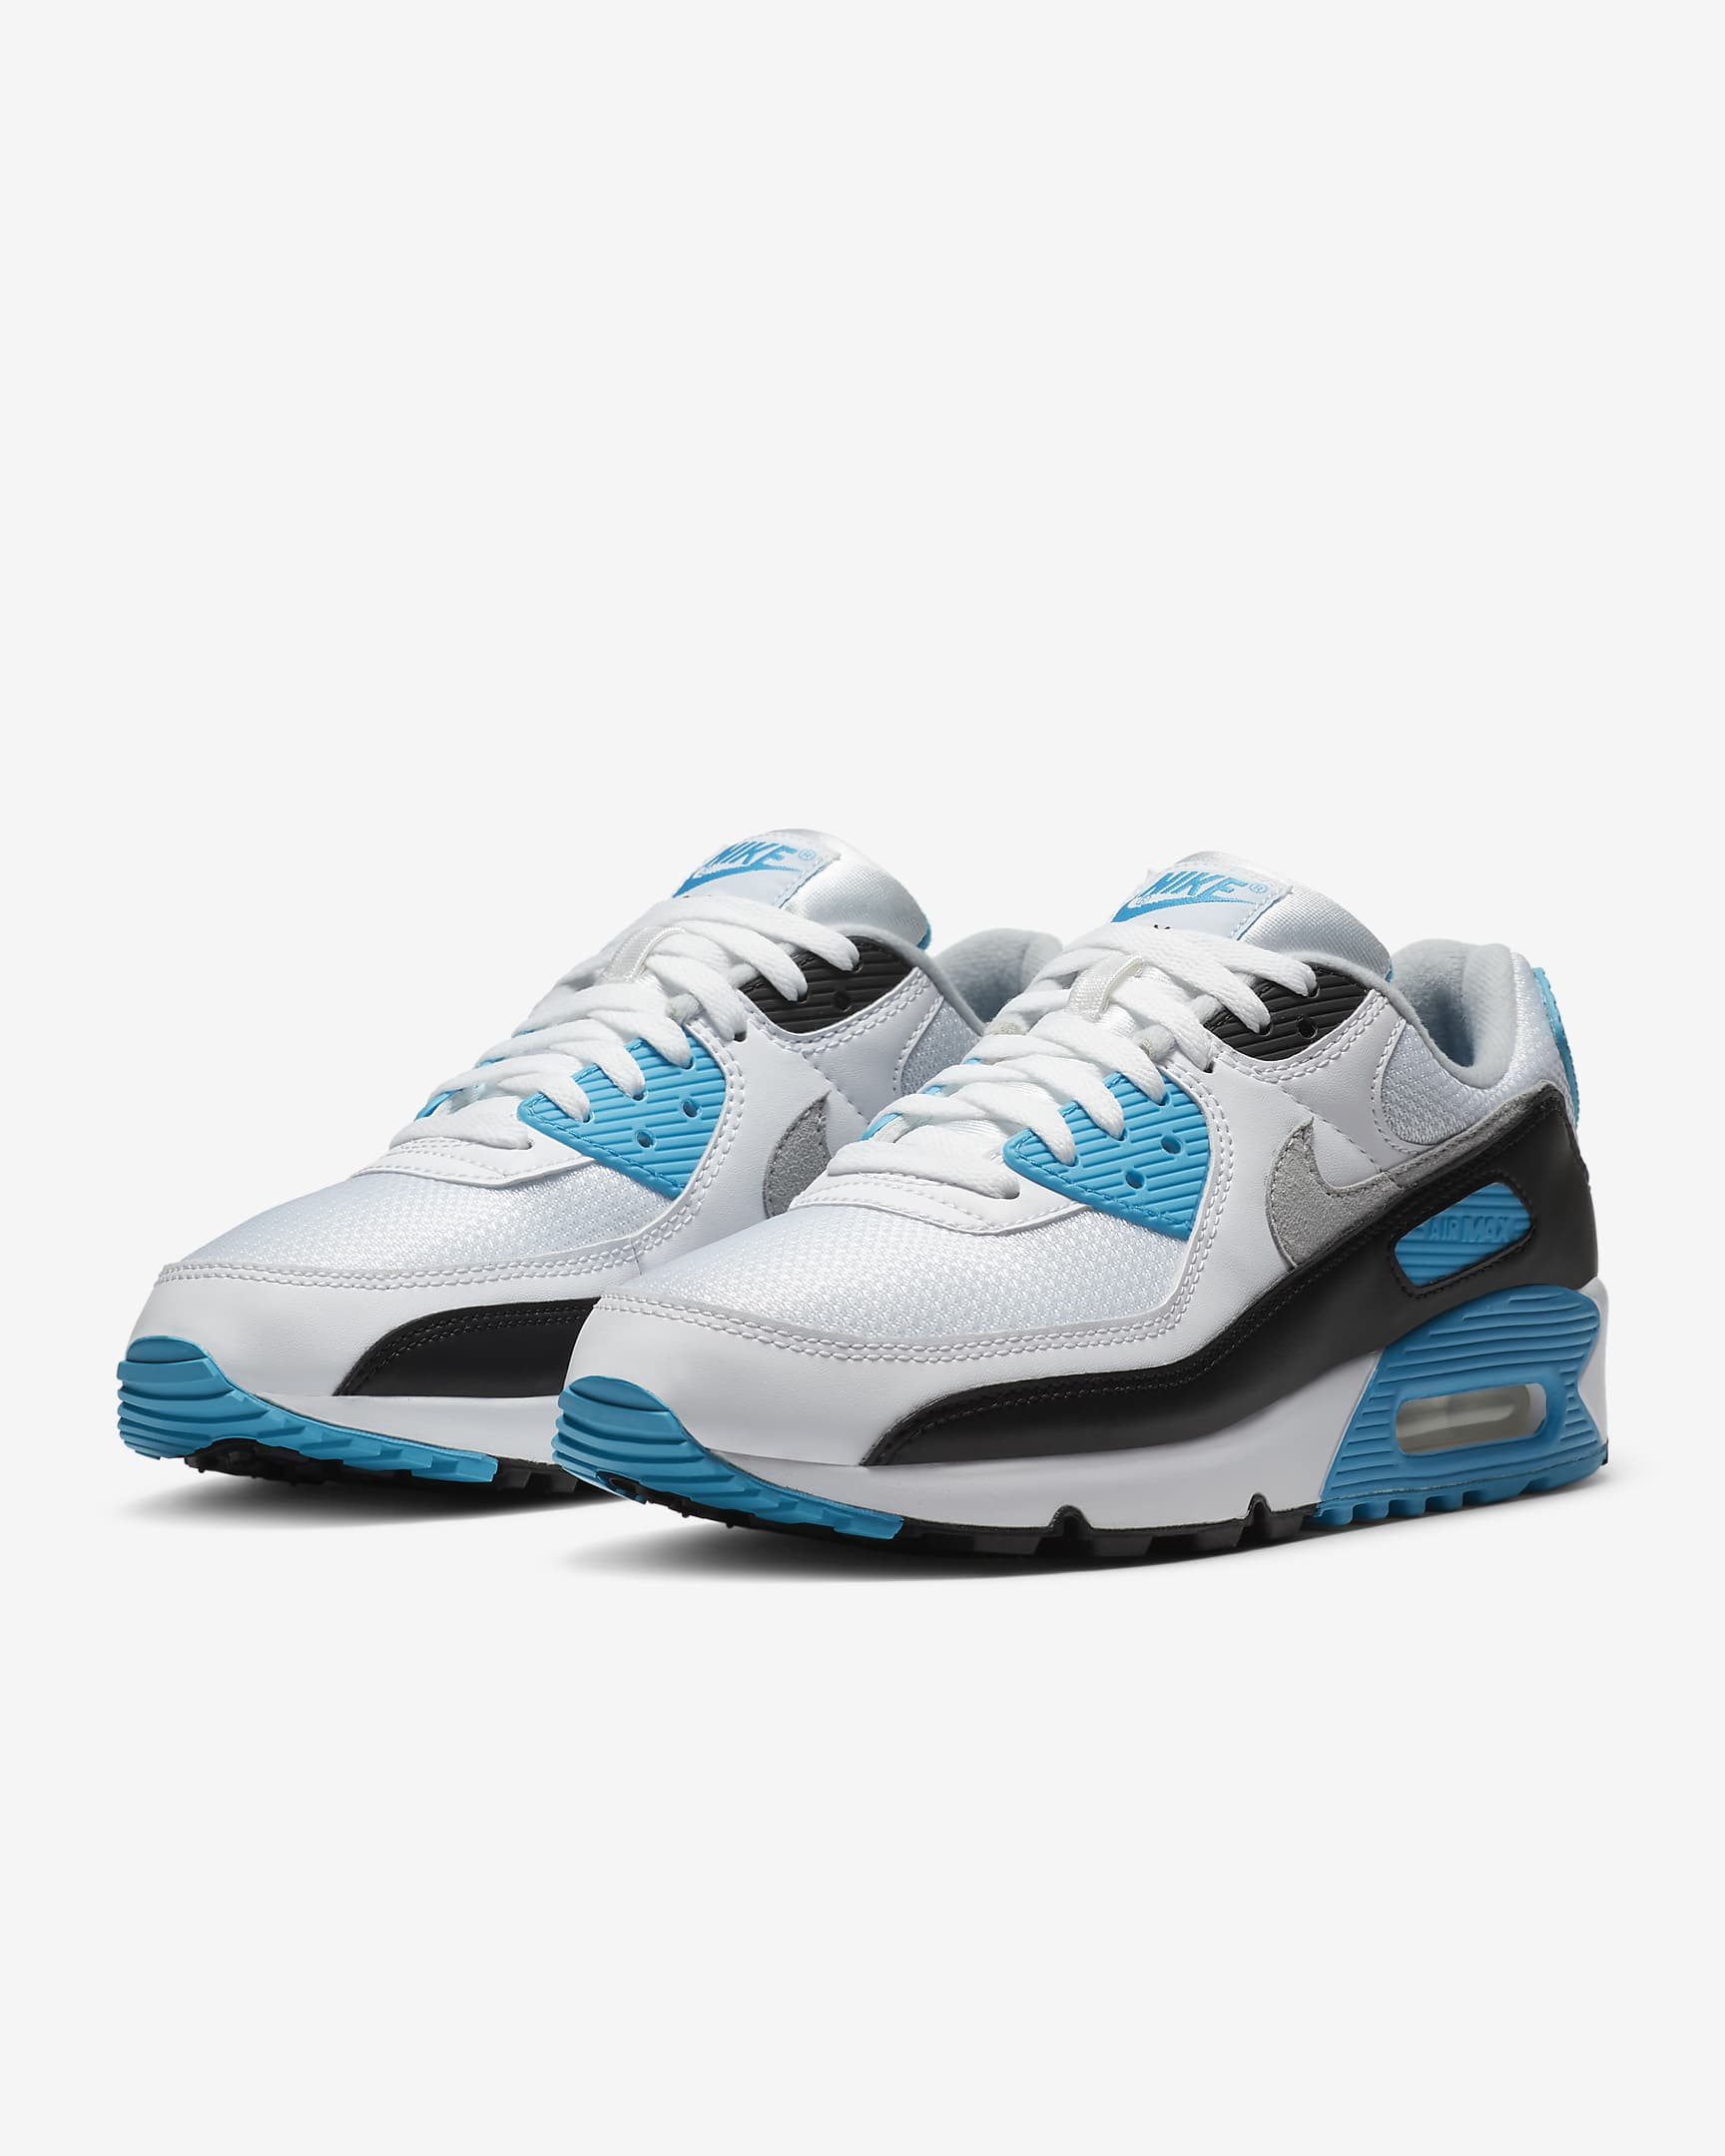 empleo Plausible arrendamiento  2020's Nike Air Max 90 III Laser Blue Release Is The One To Own